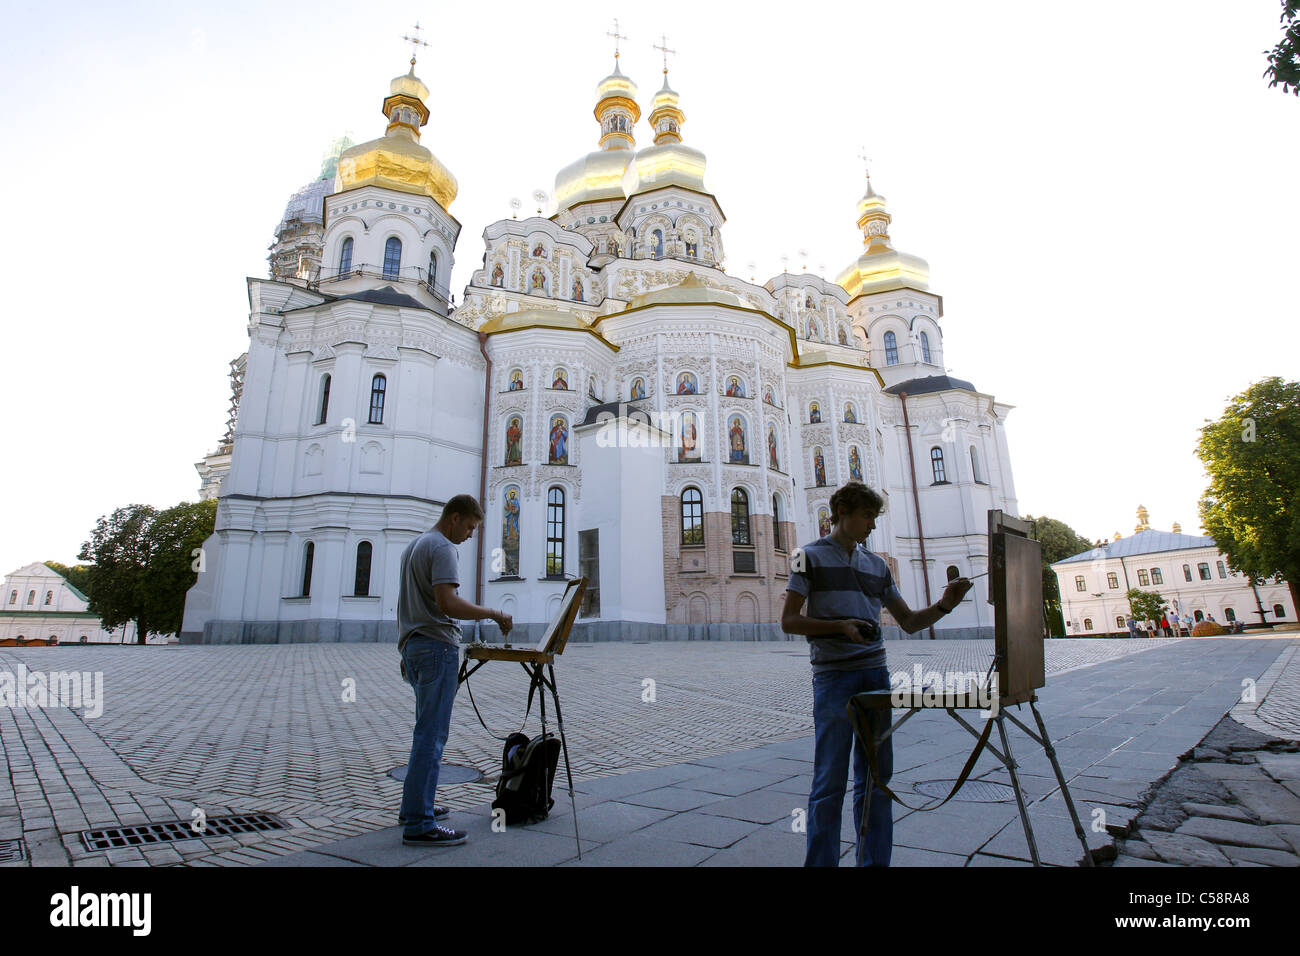 ARTISTS AT CATHEDRAL OF THE DORMITION PECHERSK LAVRA KIEV UKRAINE 15 June 2011 - Stock Image